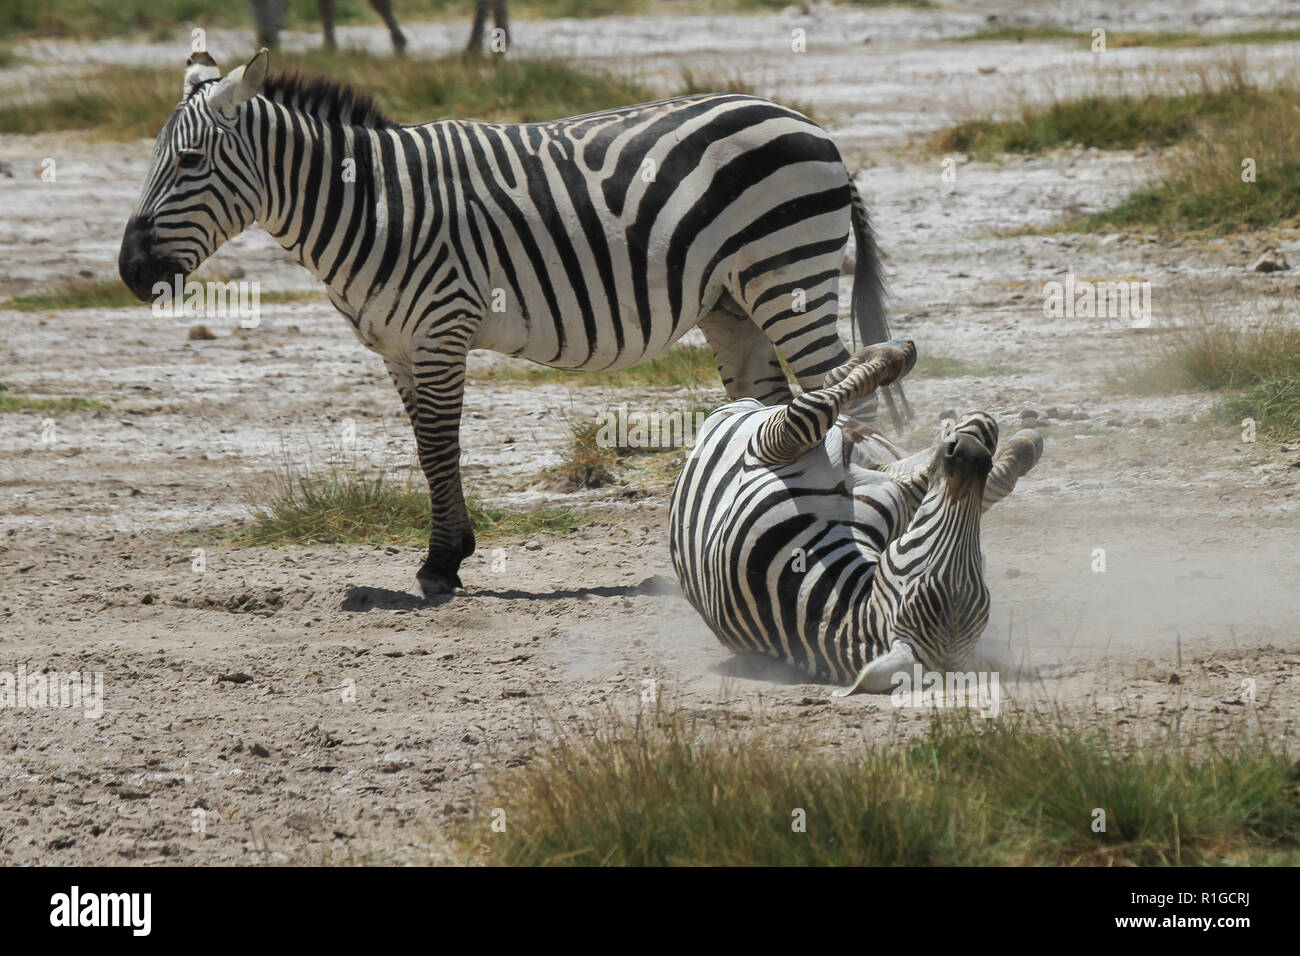 A zebra rolling in the dust of Amboseli national park - Stock Image